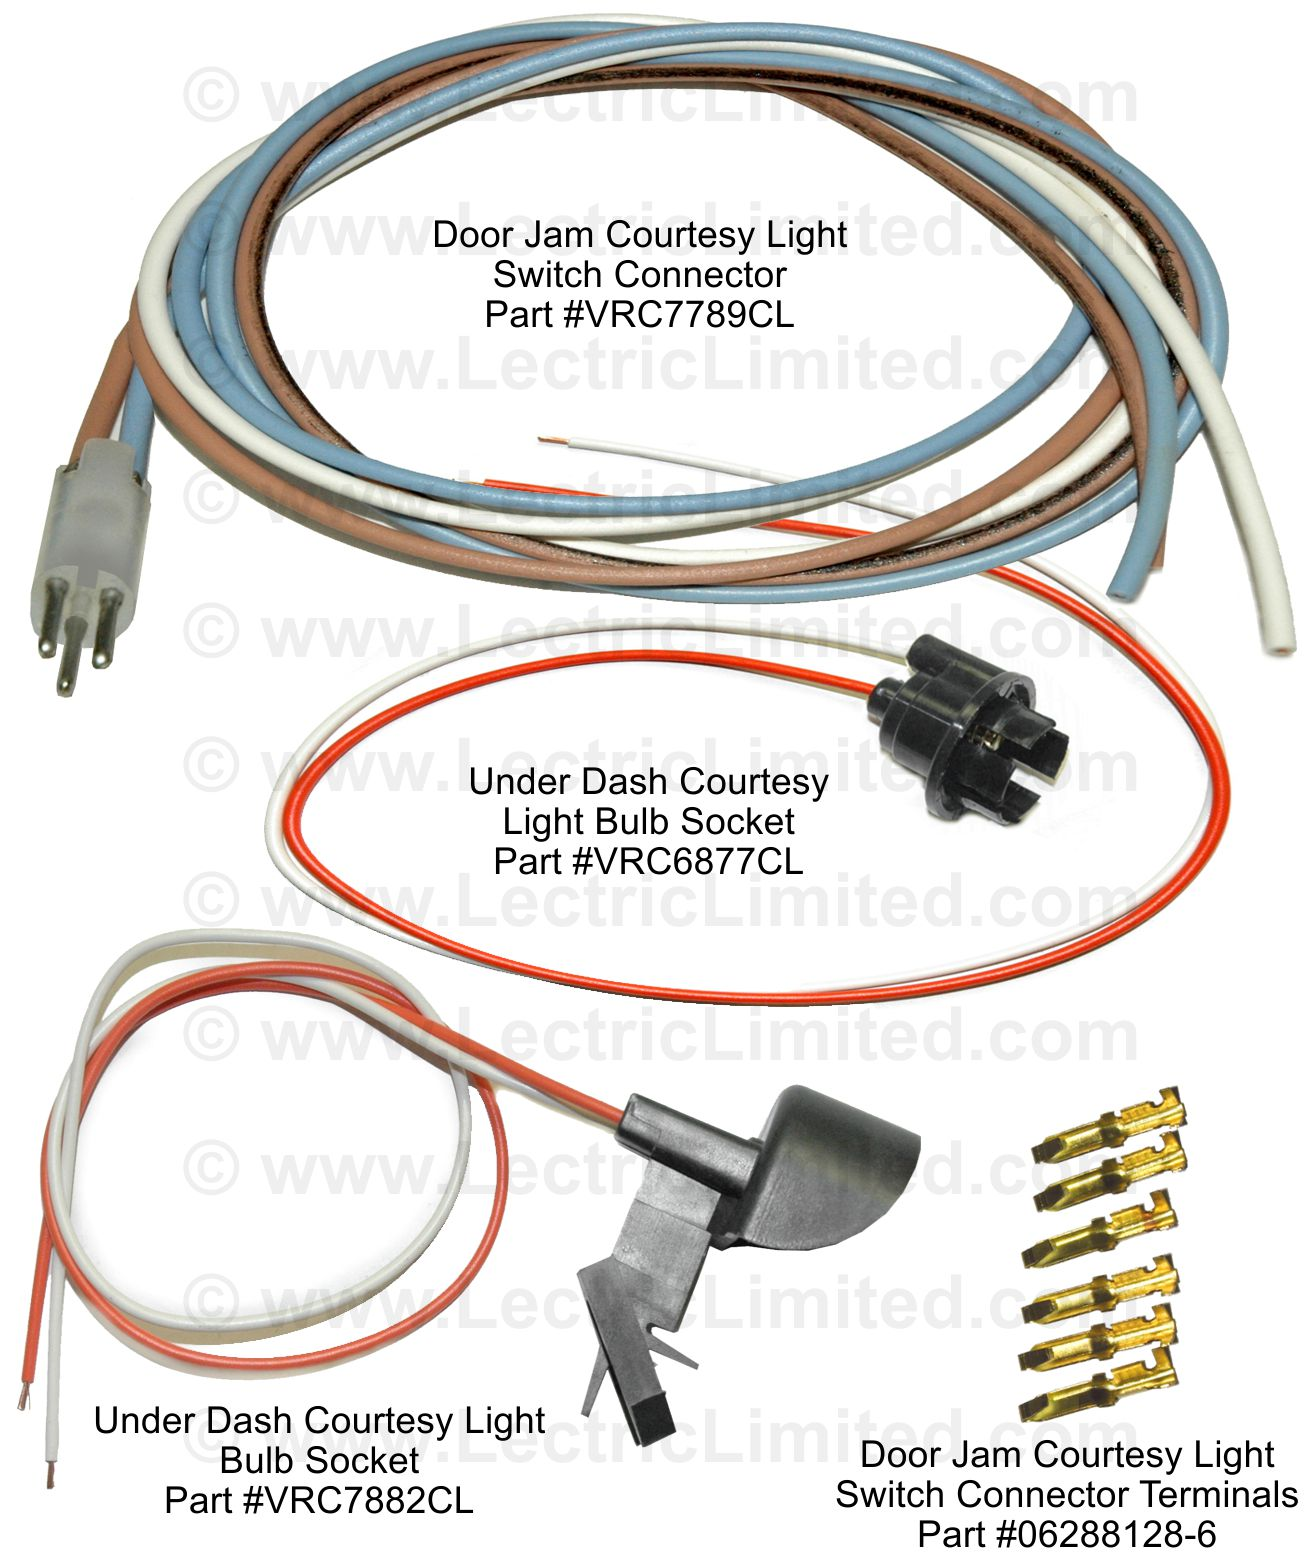 Repair Components Gm Wiring Harness Terminals Door Jam Courtesy Light Switch Connectors